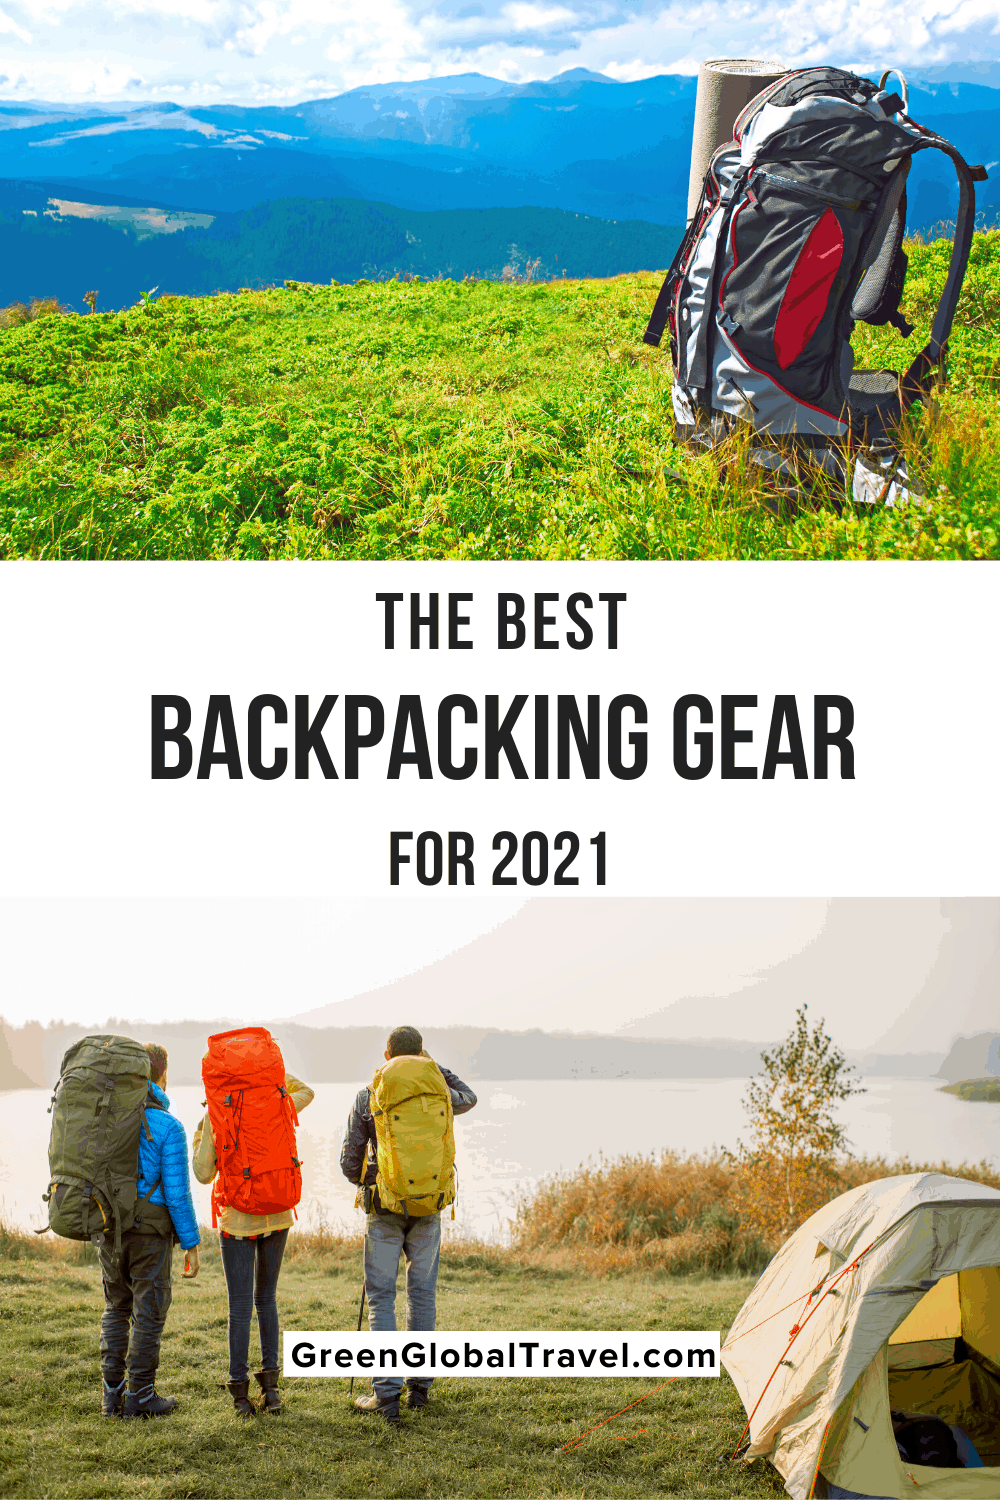 The Best Backpacking Gear for 2021: 35+ Product Reviews of tents, backpacks, and sleeping bags to camp stoves, trekking poles, and more.